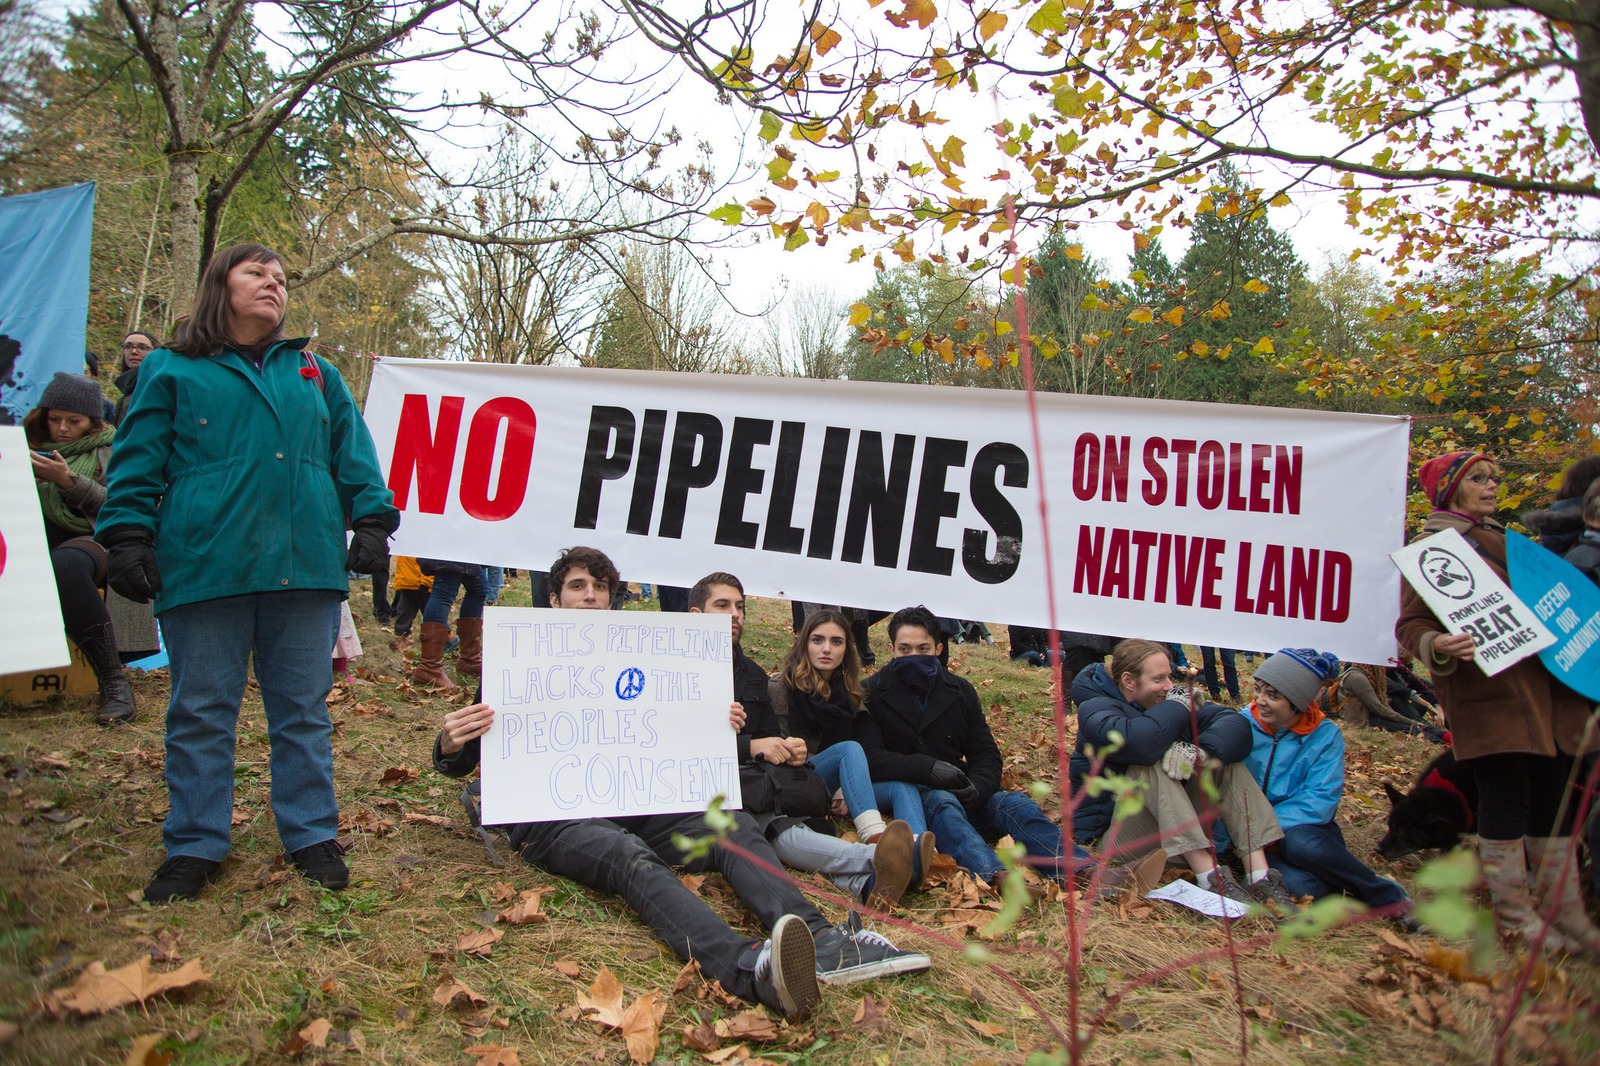 Protestors hold up signs at a rally against a proposed Kinder Morgan oil pipeline expansion on Burnaby Mountain in 2014 in British Columbia. In late May, the Canadian government announced it would fund an expansion project for the Kinder Morgan Trans Moun